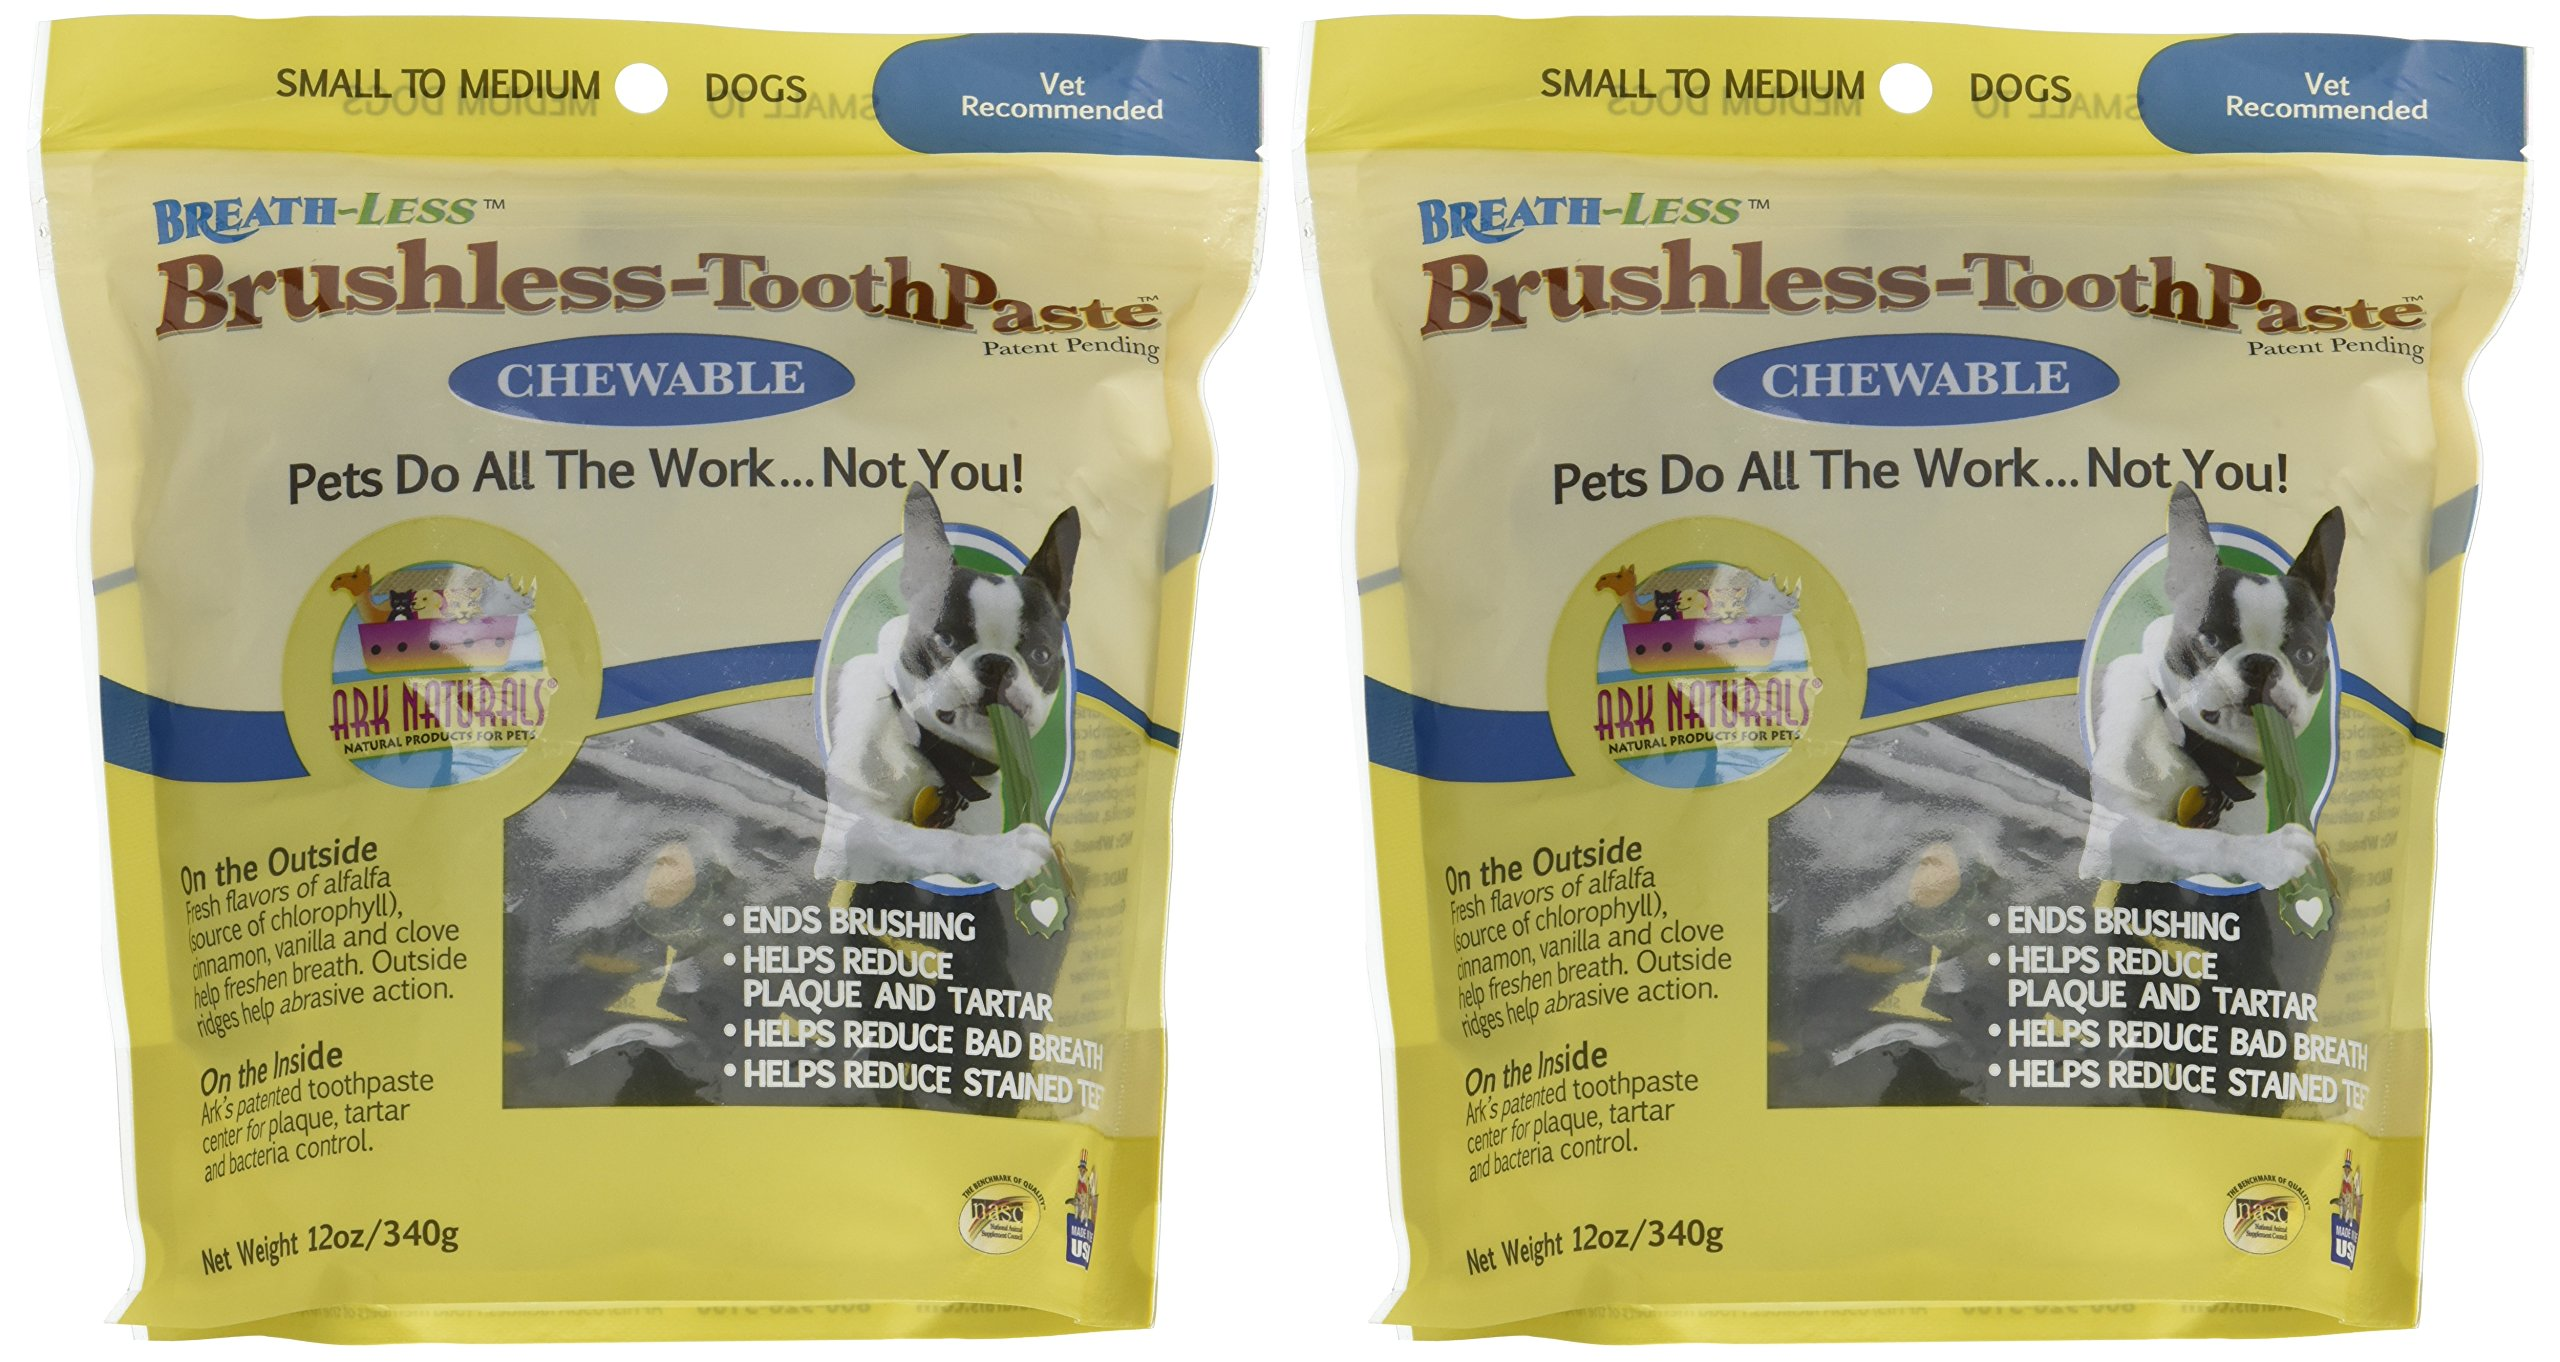 ARK NATURALS Breath-Less Brushless Toothpaste - 12 oz Pack of 2 by ARK NATURALS (Image #2)